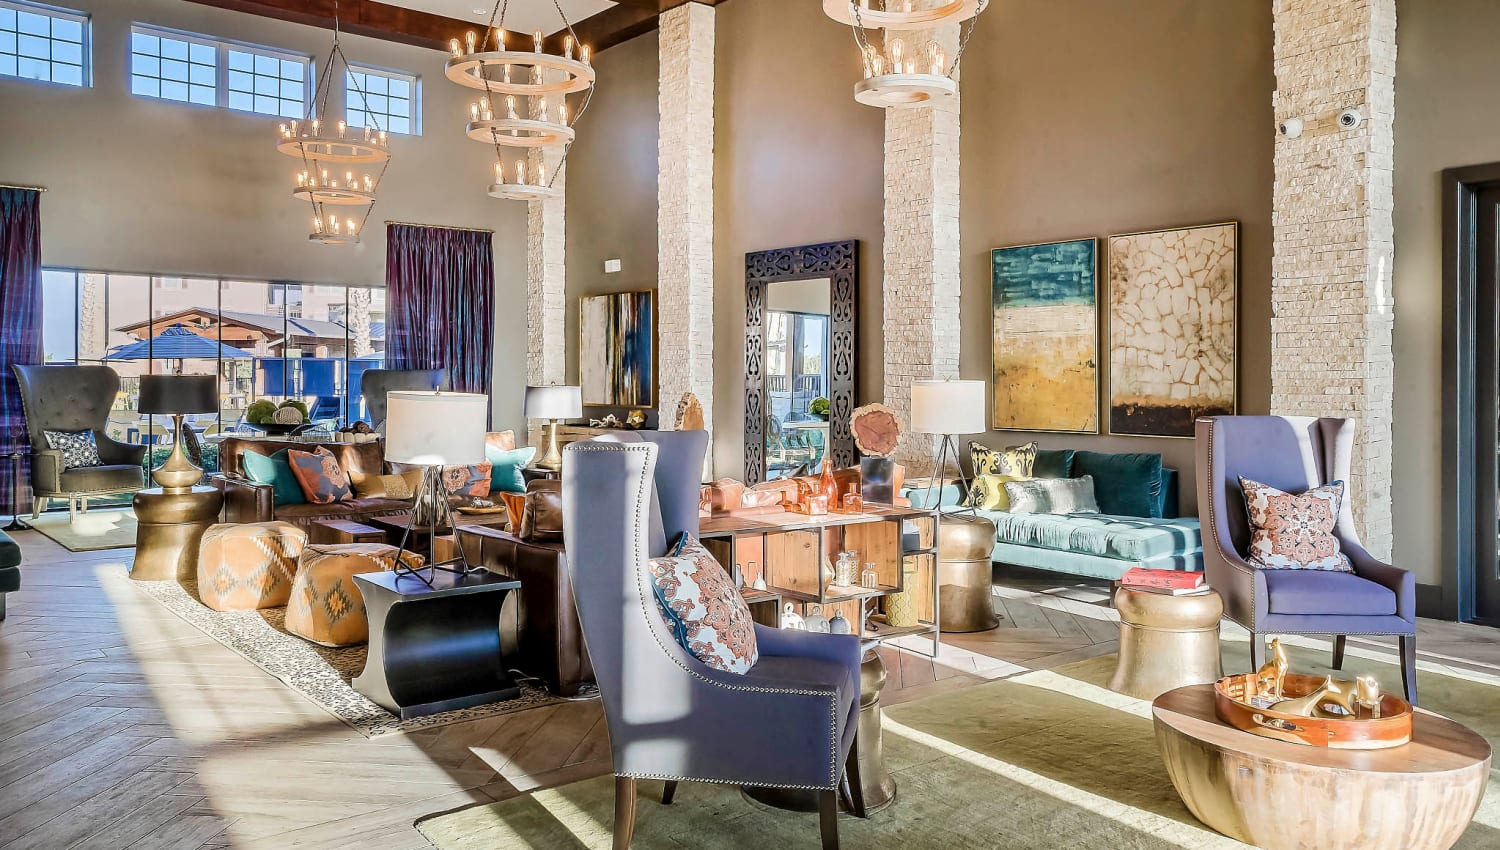 Lavishly decorated lobby interior at Sundance Creek in Midland, Texas